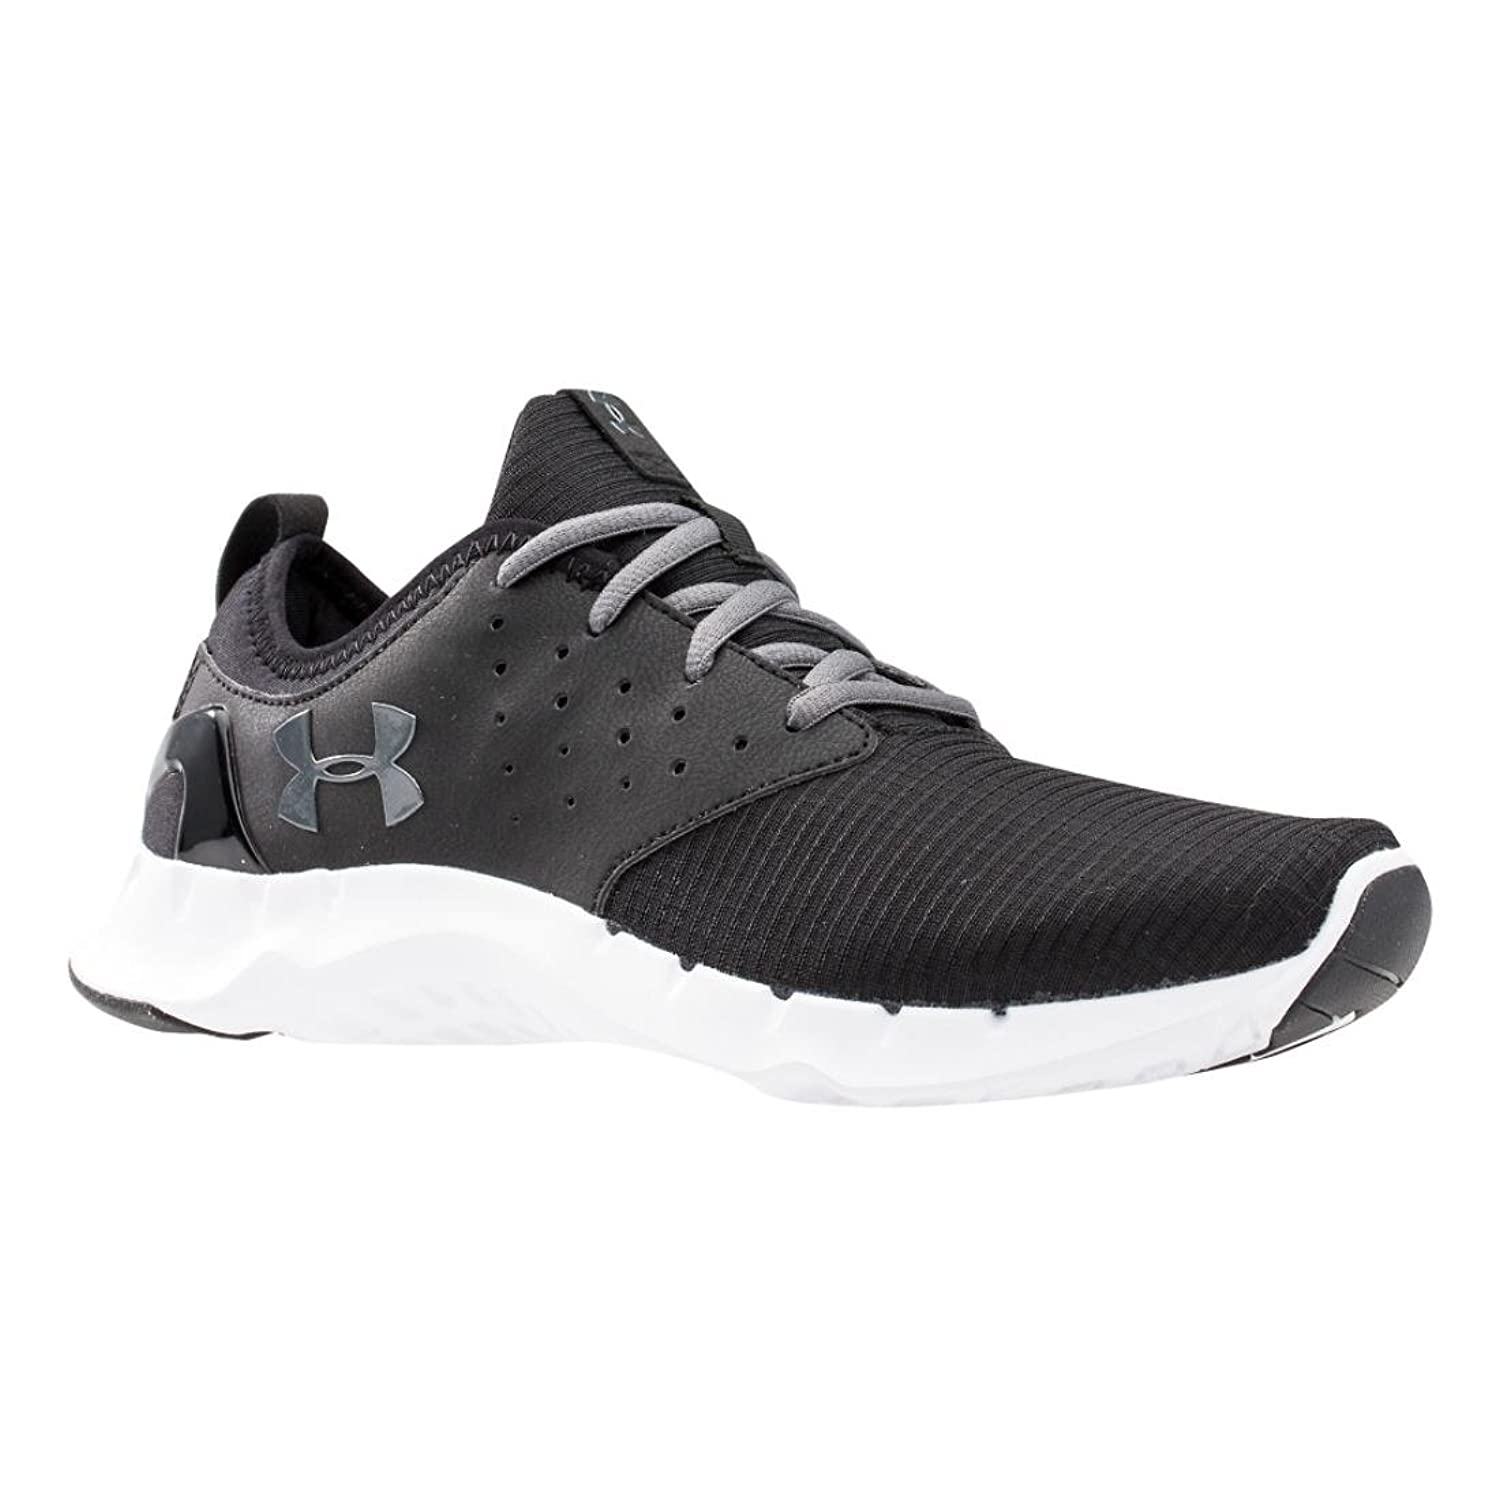 ce500e00be Under Armour Men s UA Flow Grid Running Shoes 85%OFF - malo-selo.hr